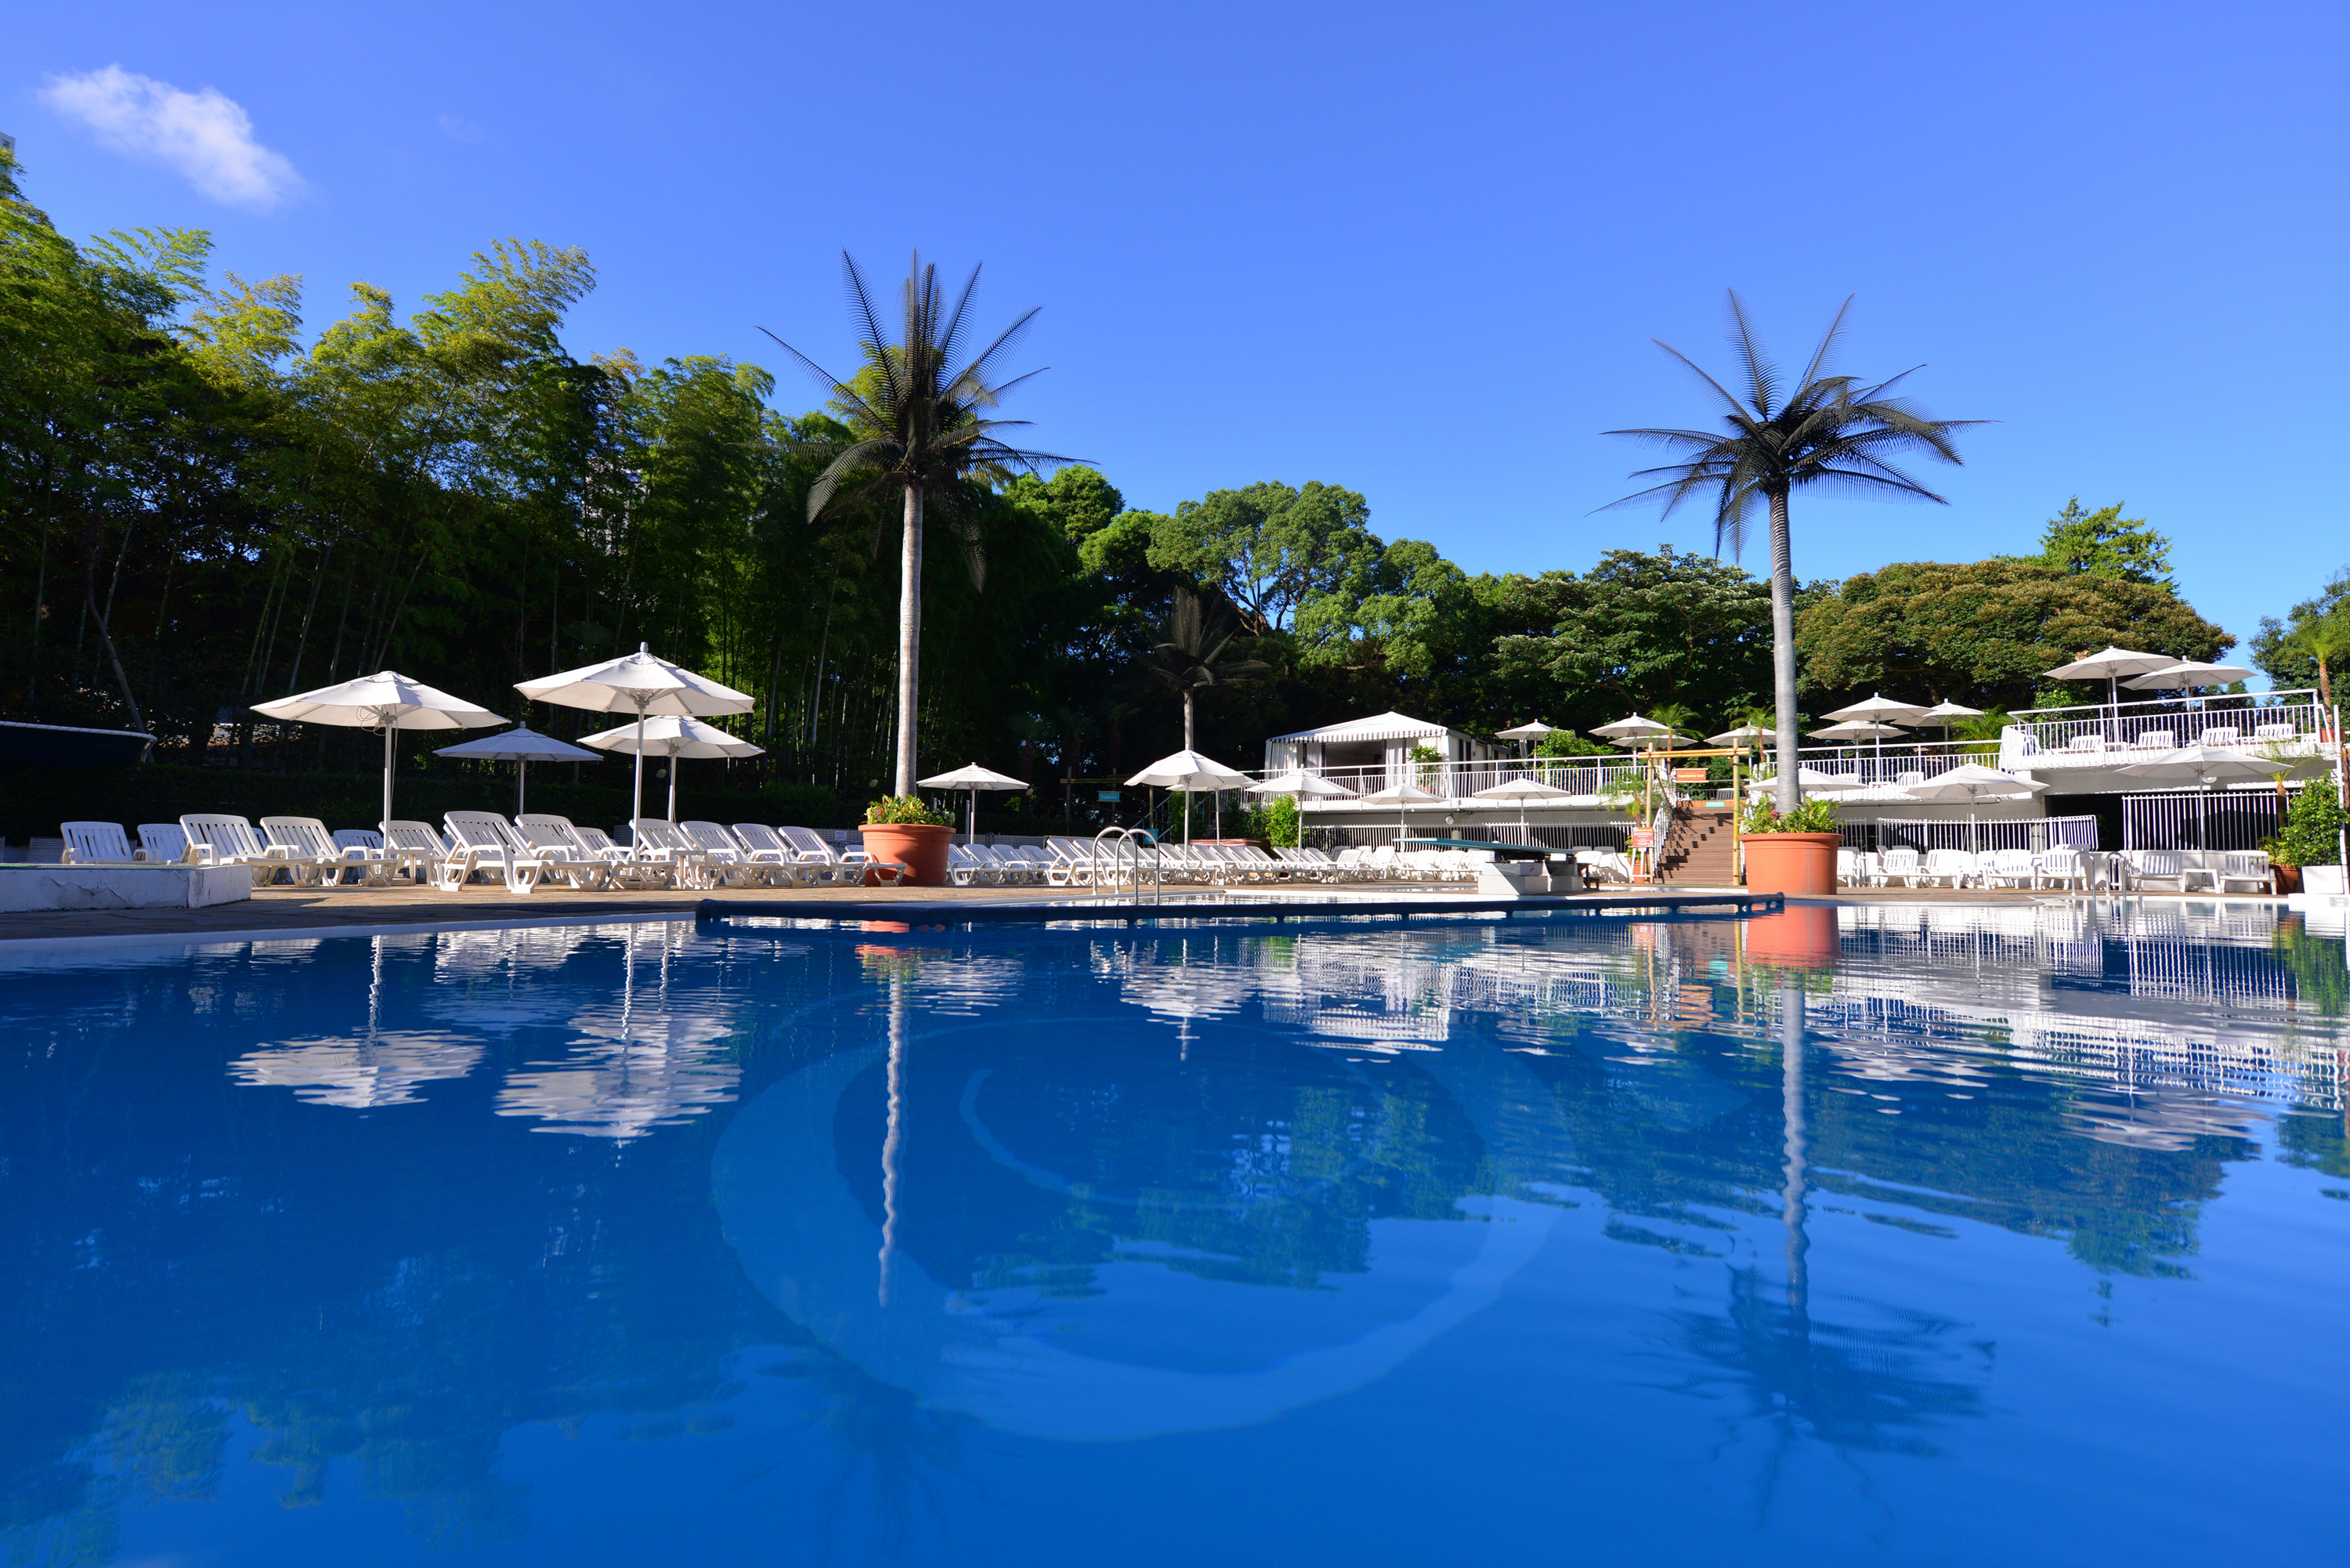 garden pool at hotel new otani 2015 things to do in tokyo